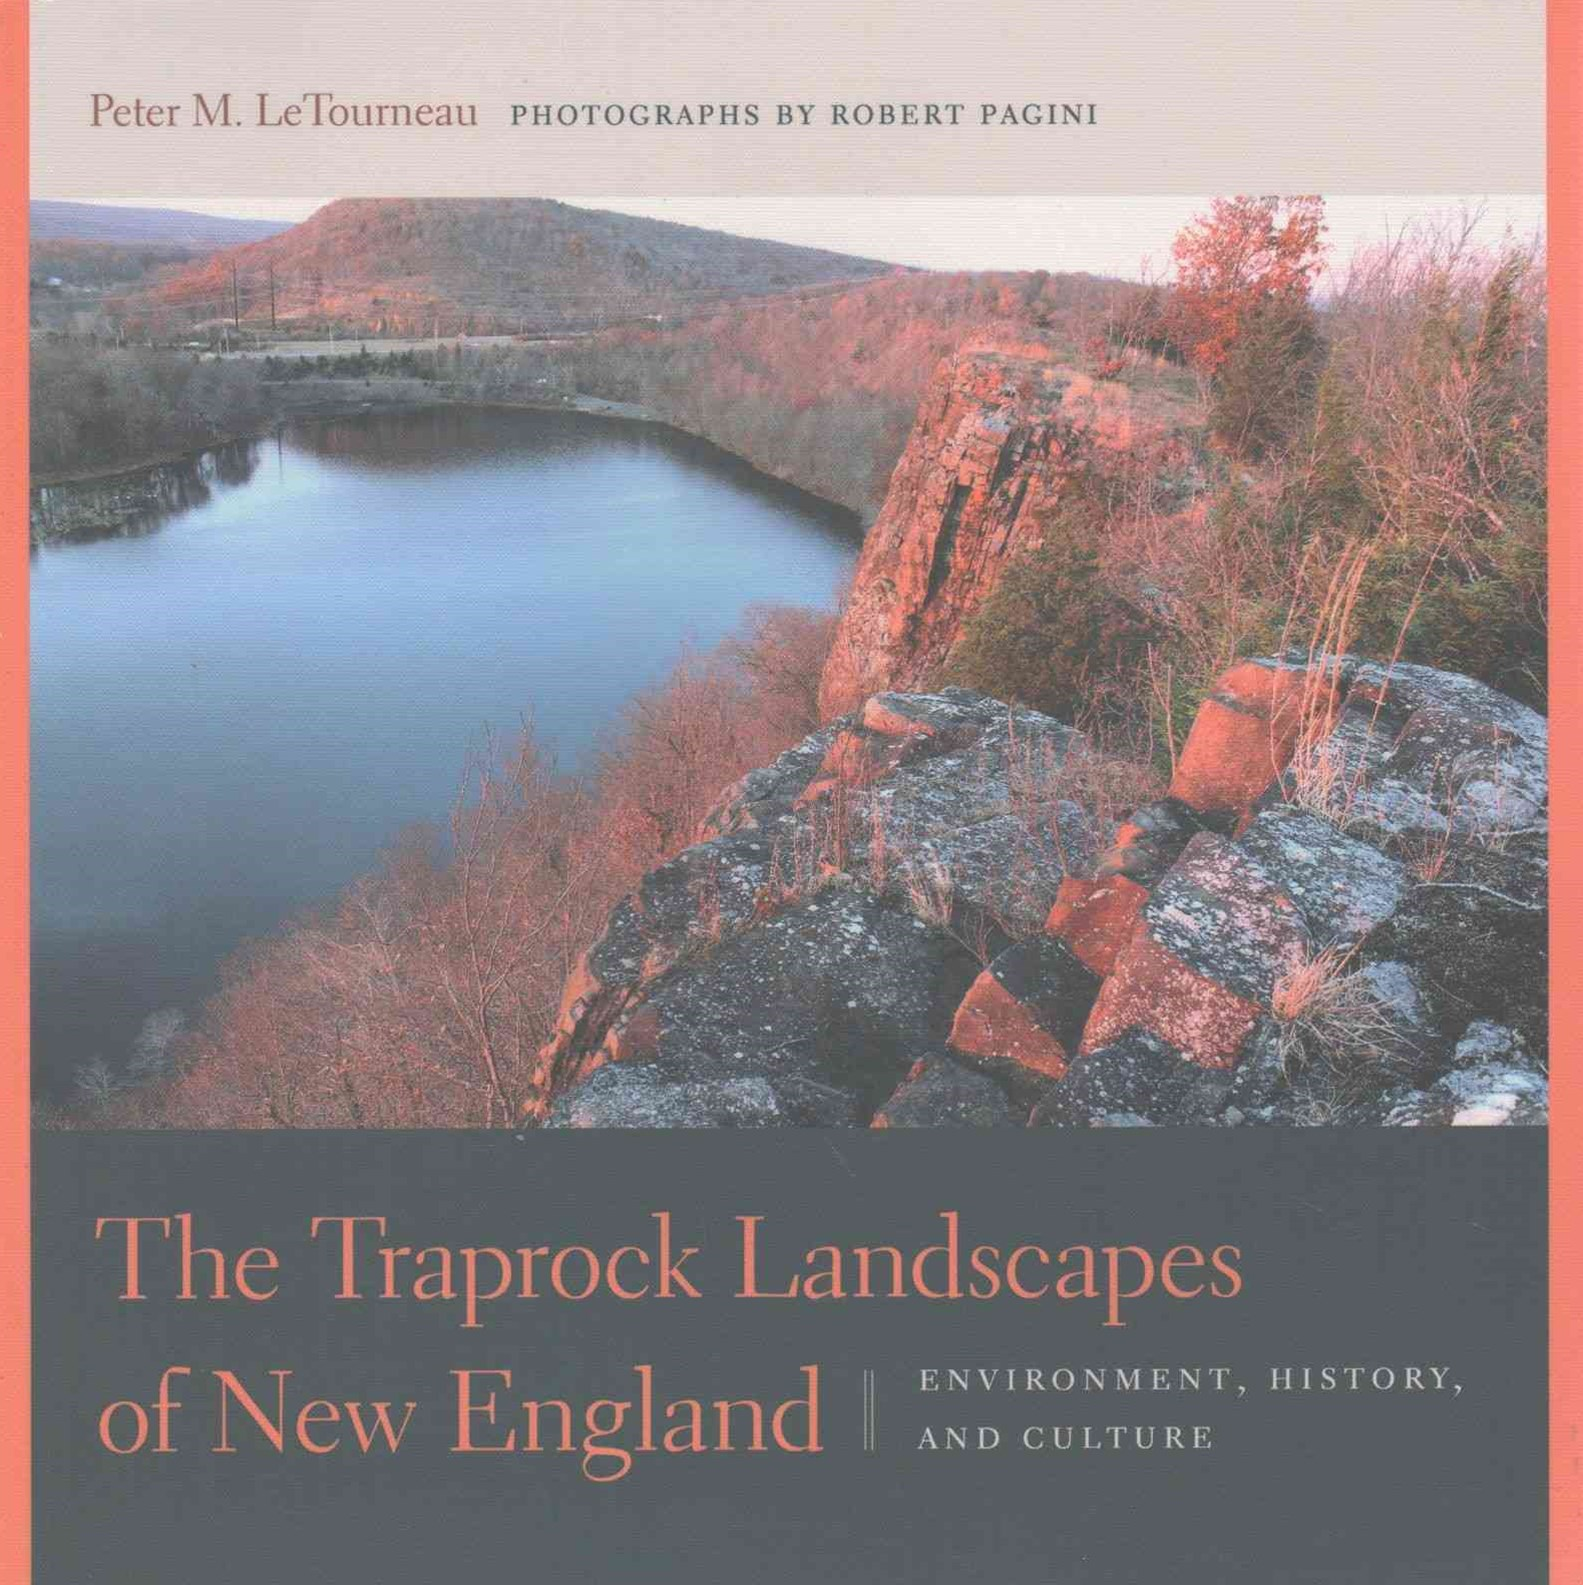 Traprock Landscapes of New England